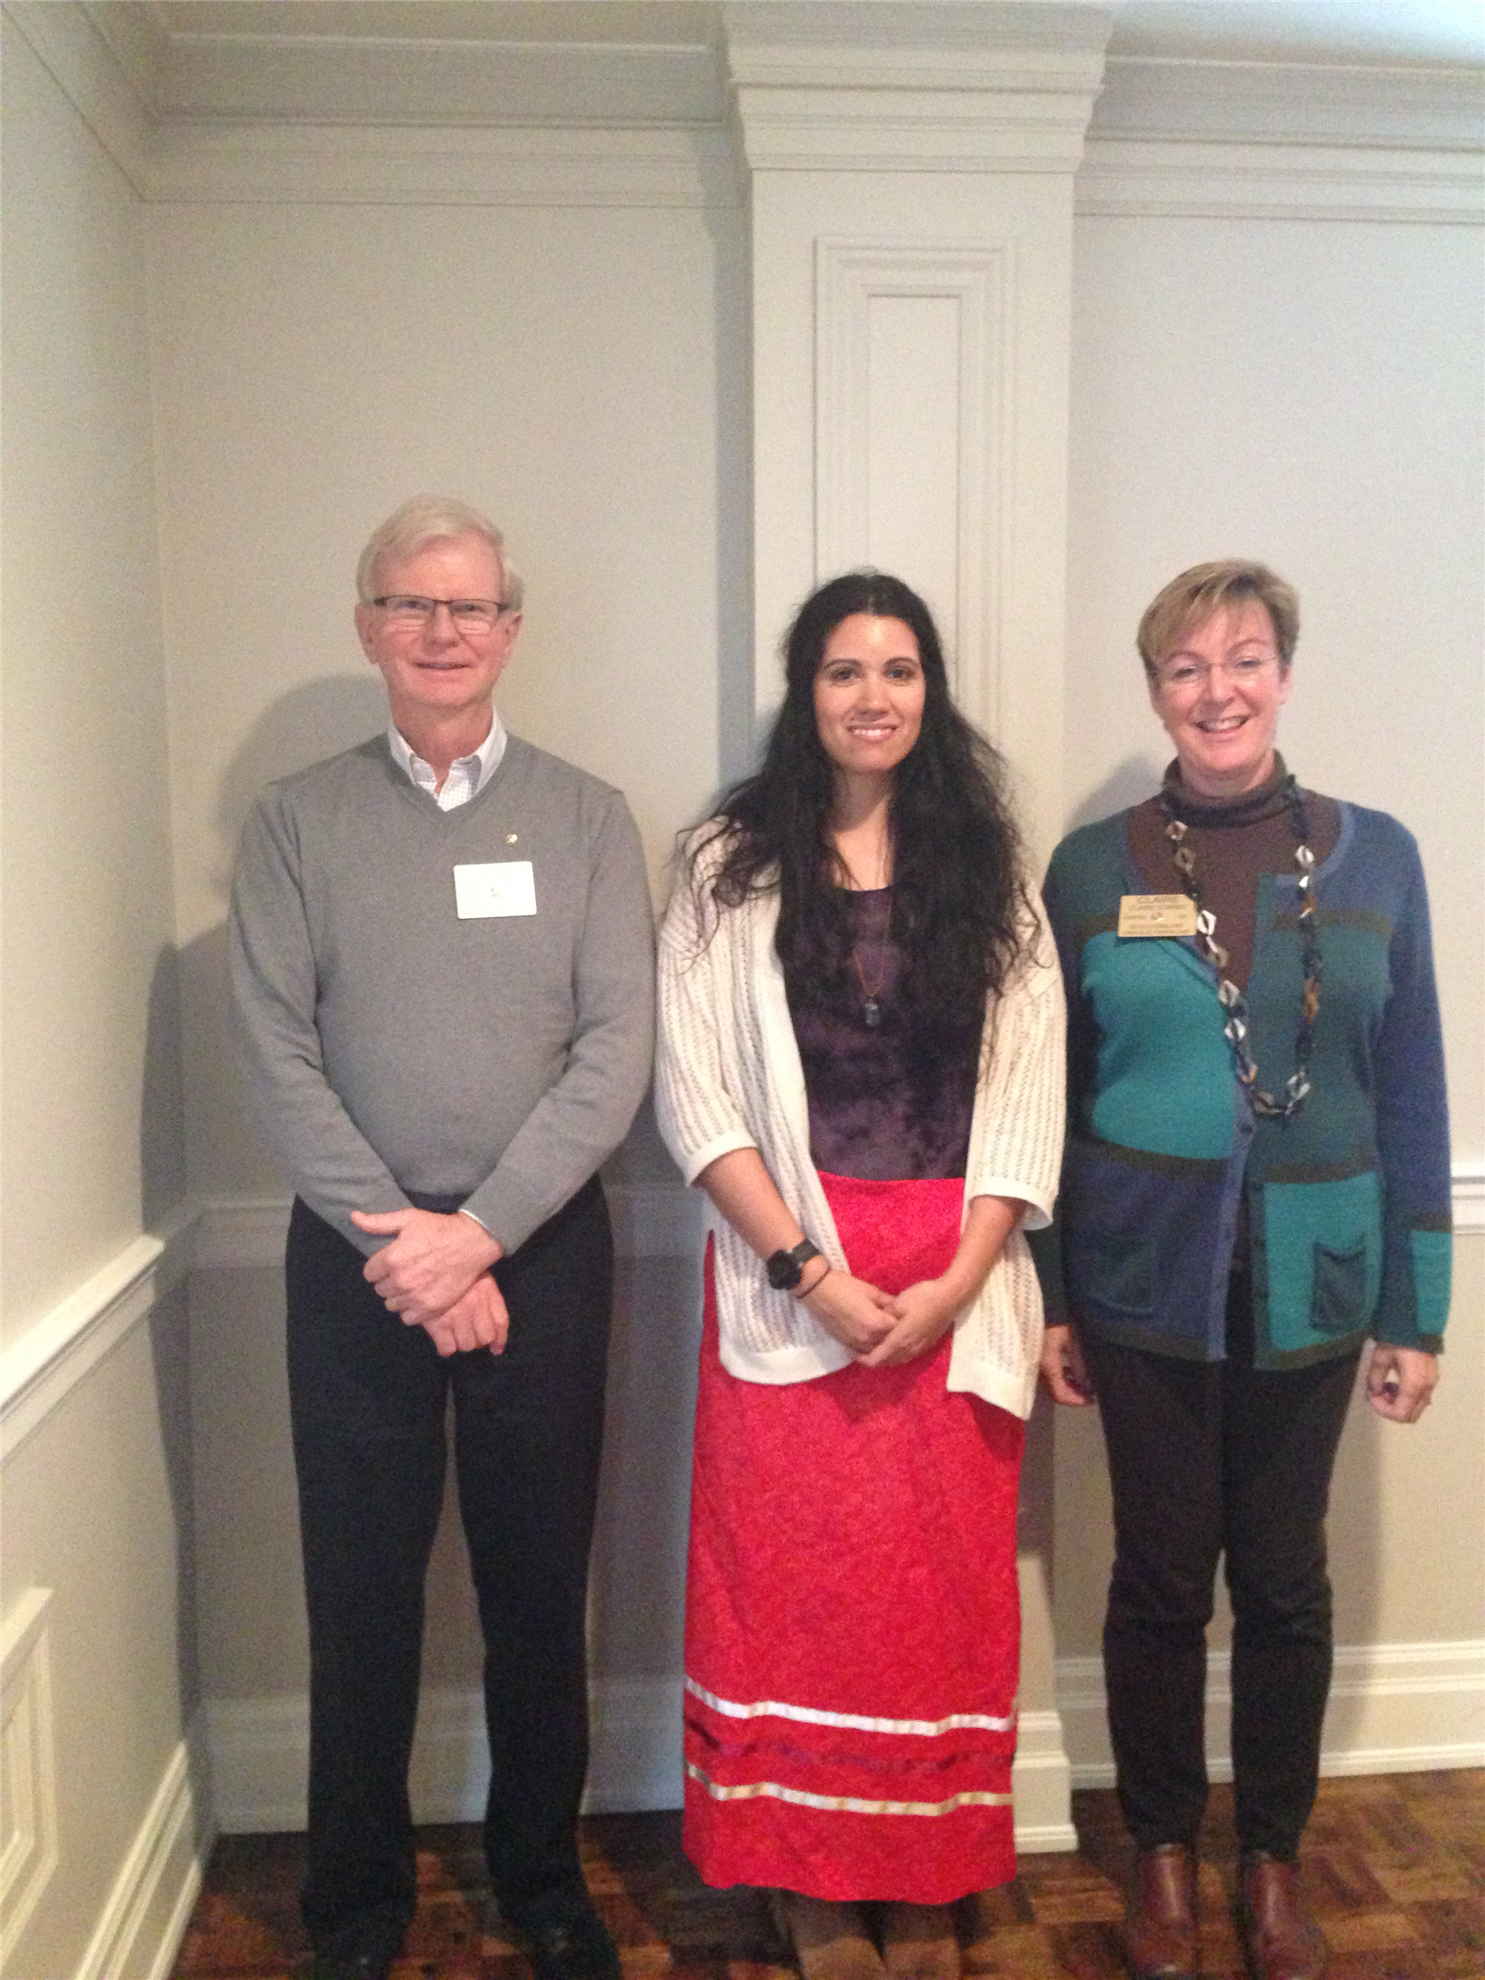 In the photo below is Stepfanie Johnston the first recipient of the Rotary  Indigenous Scholarship with Cliff Thompson and Claire Conway.